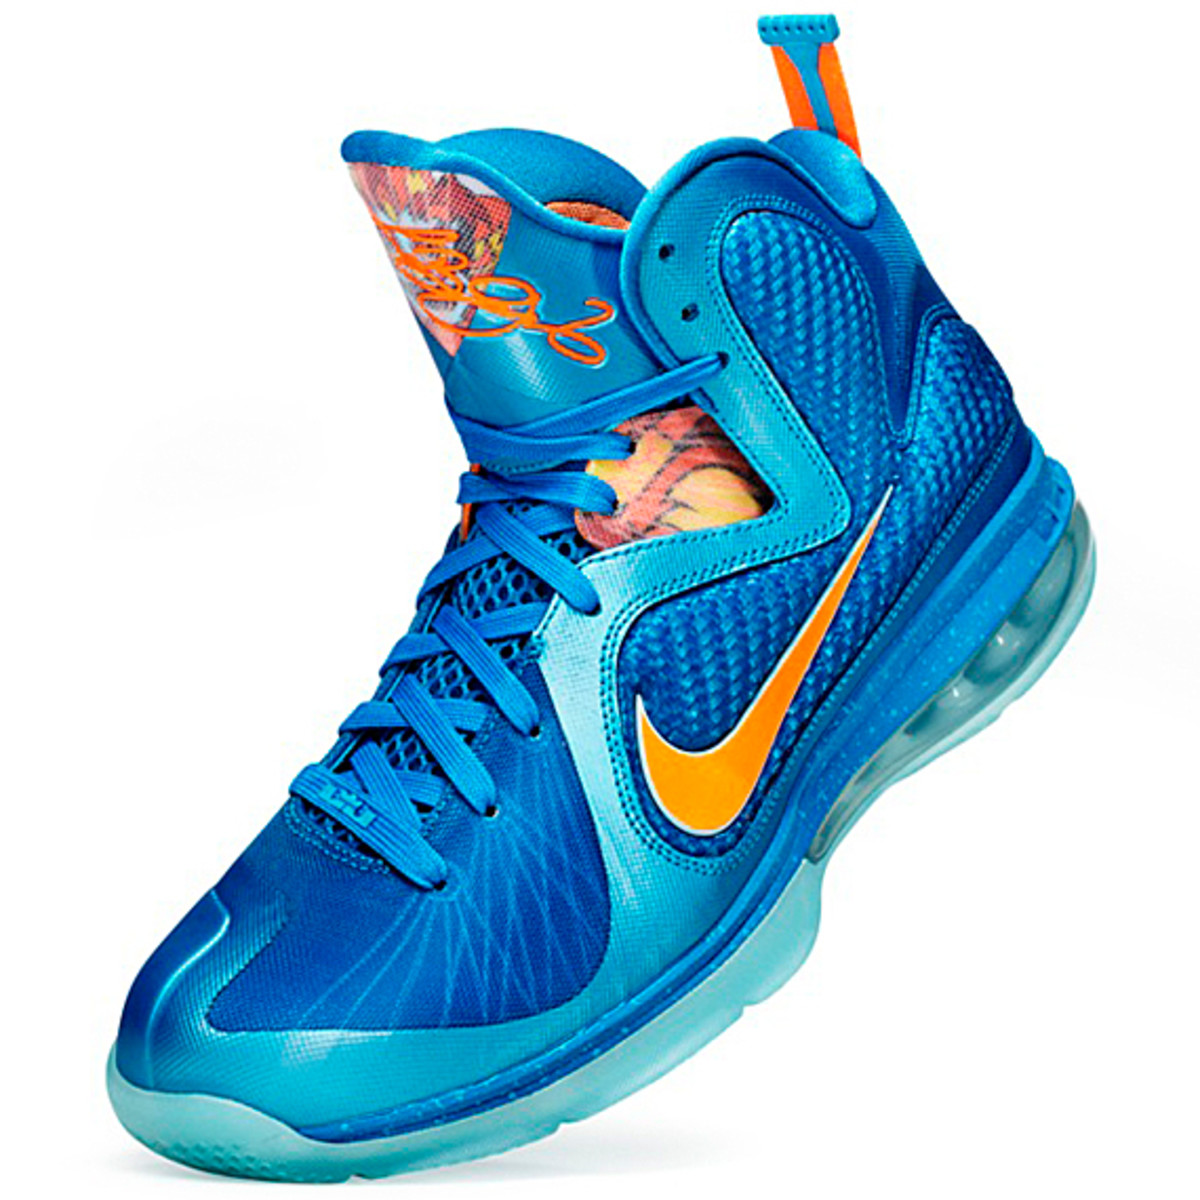 nike-lebron-9-china-edition-detailed-look-a03